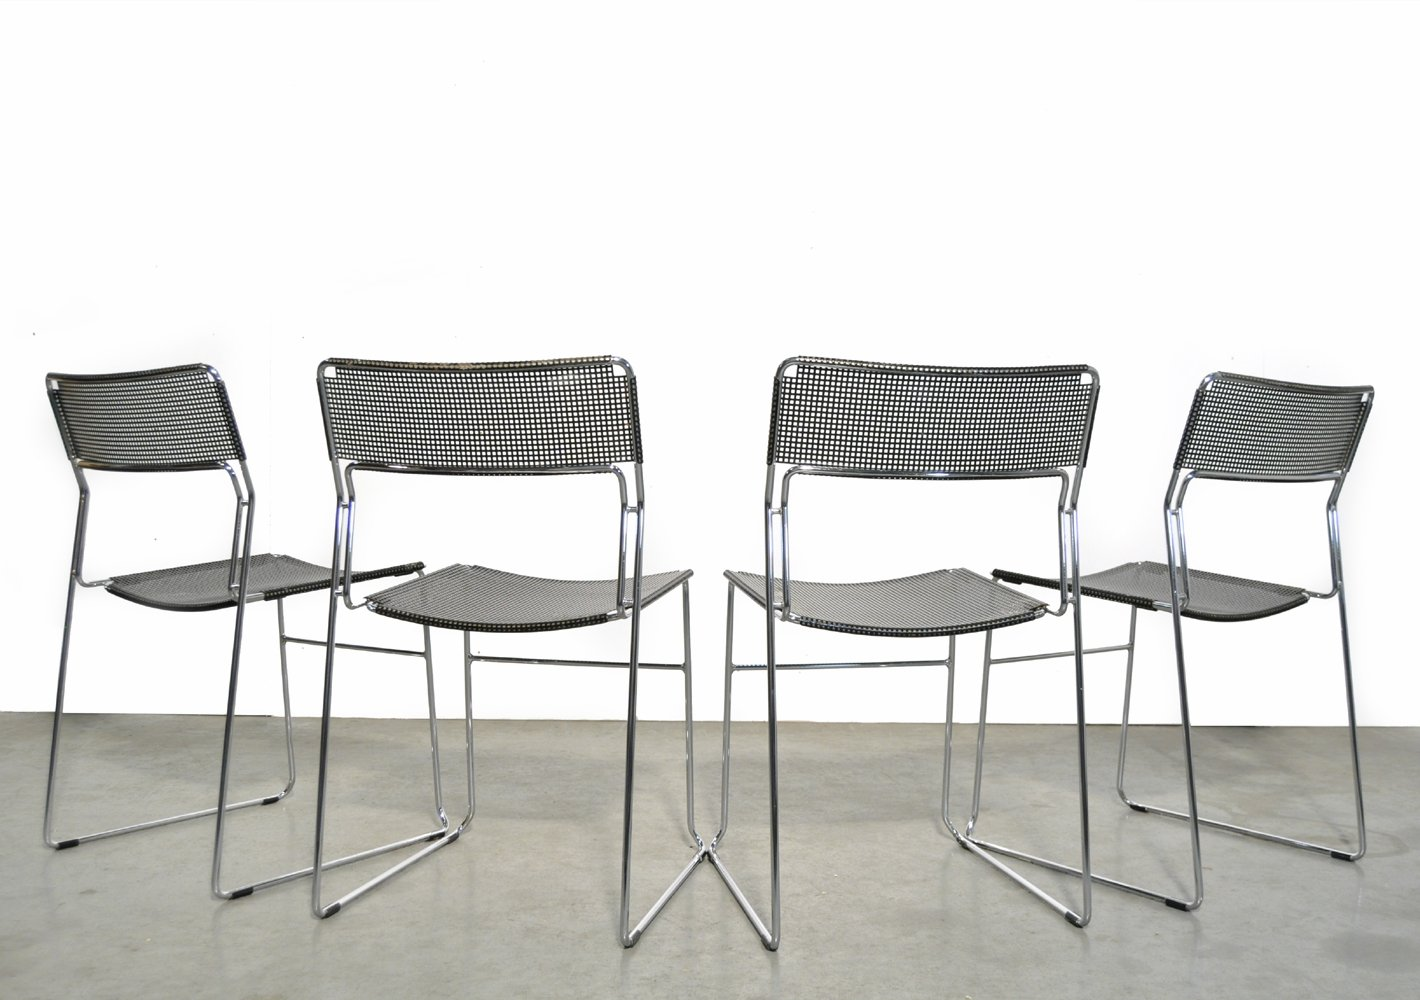 Set of 4 stackable